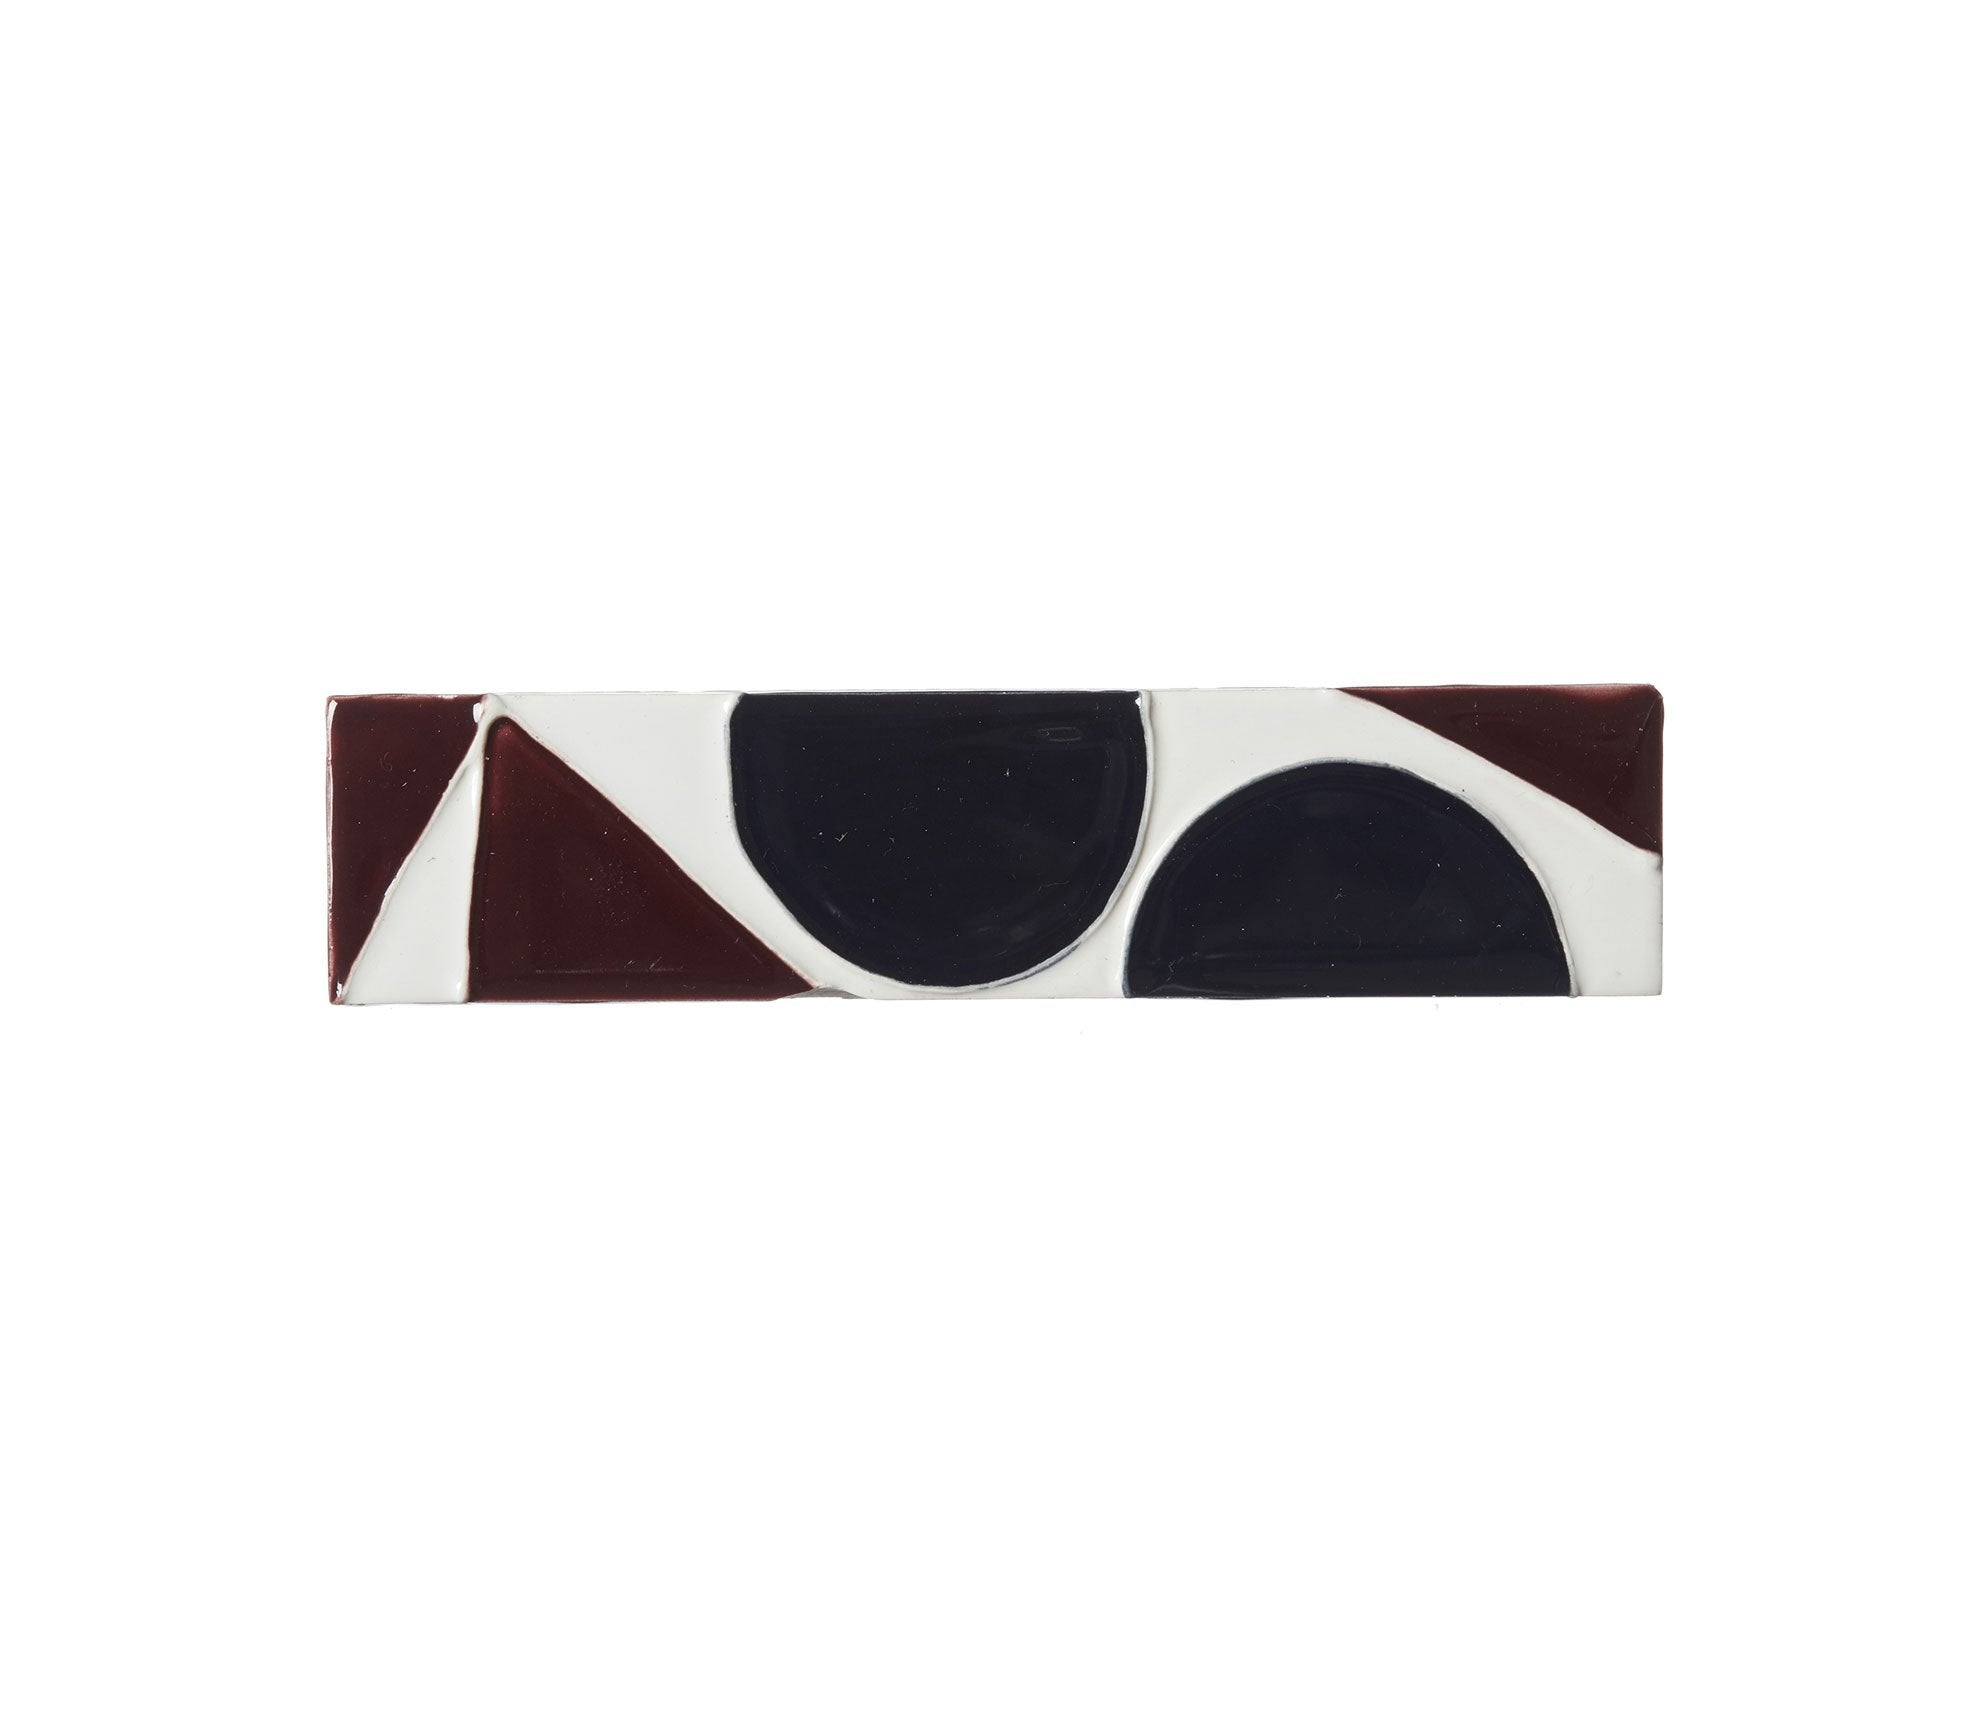 Hanley Tube Lined Decorative Tiles Product Image 35